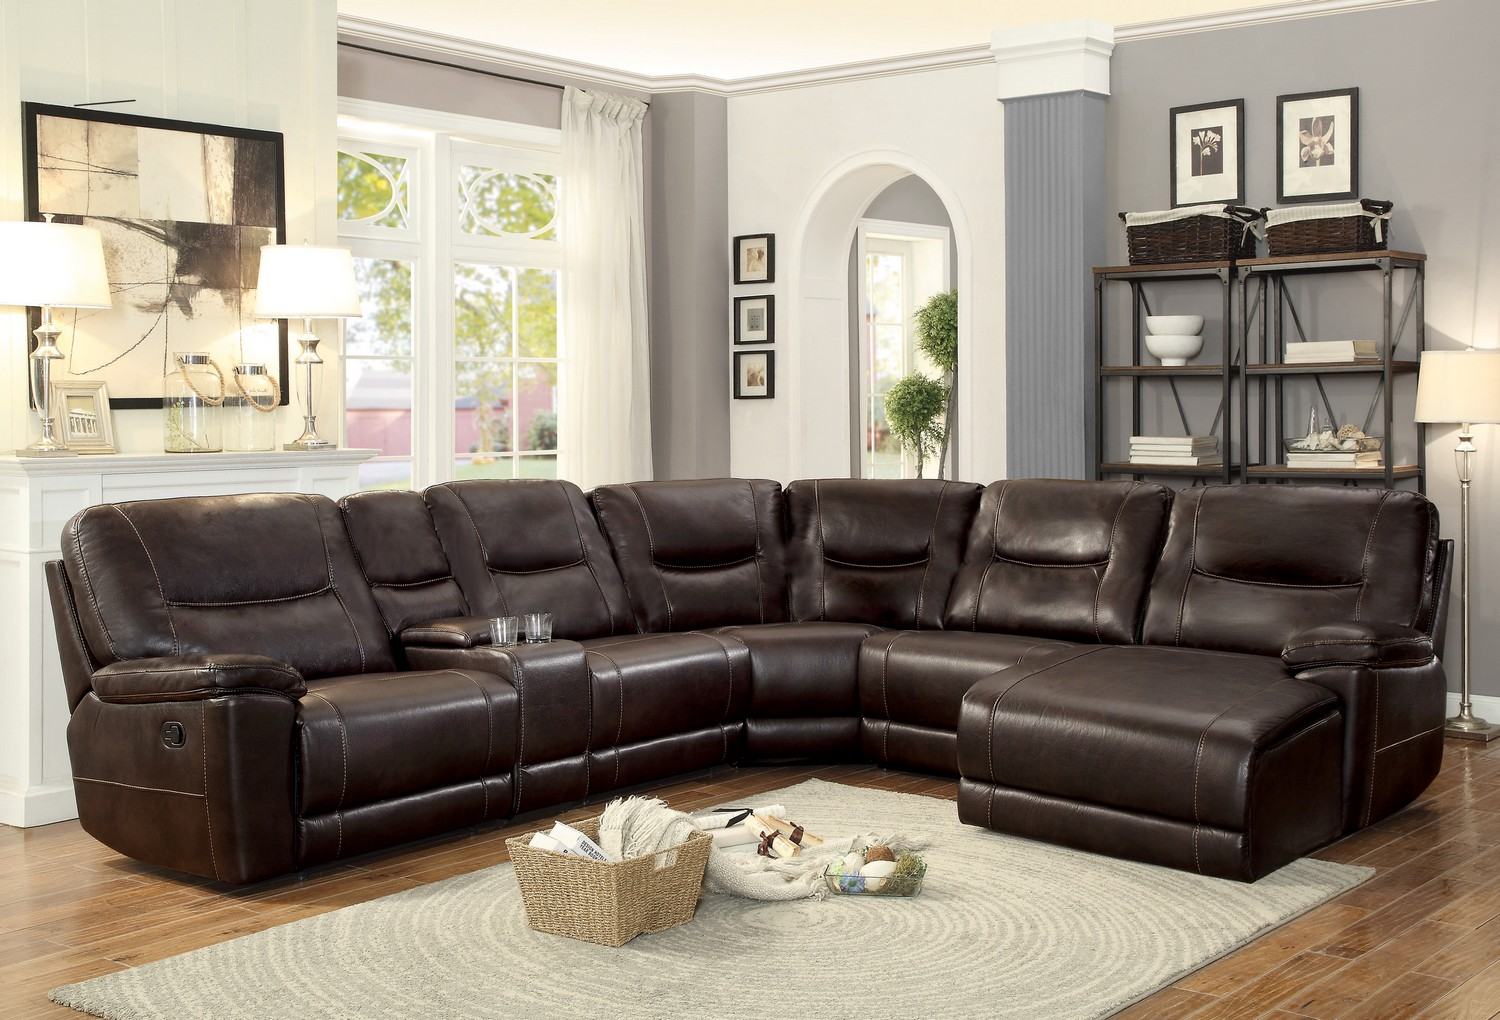 Admirable Homelegance Columbus Reclining Sectional Sofa Set C Breathable Faux Leather Dark Brown Pdpeps Interior Chair Design Pdpepsorg